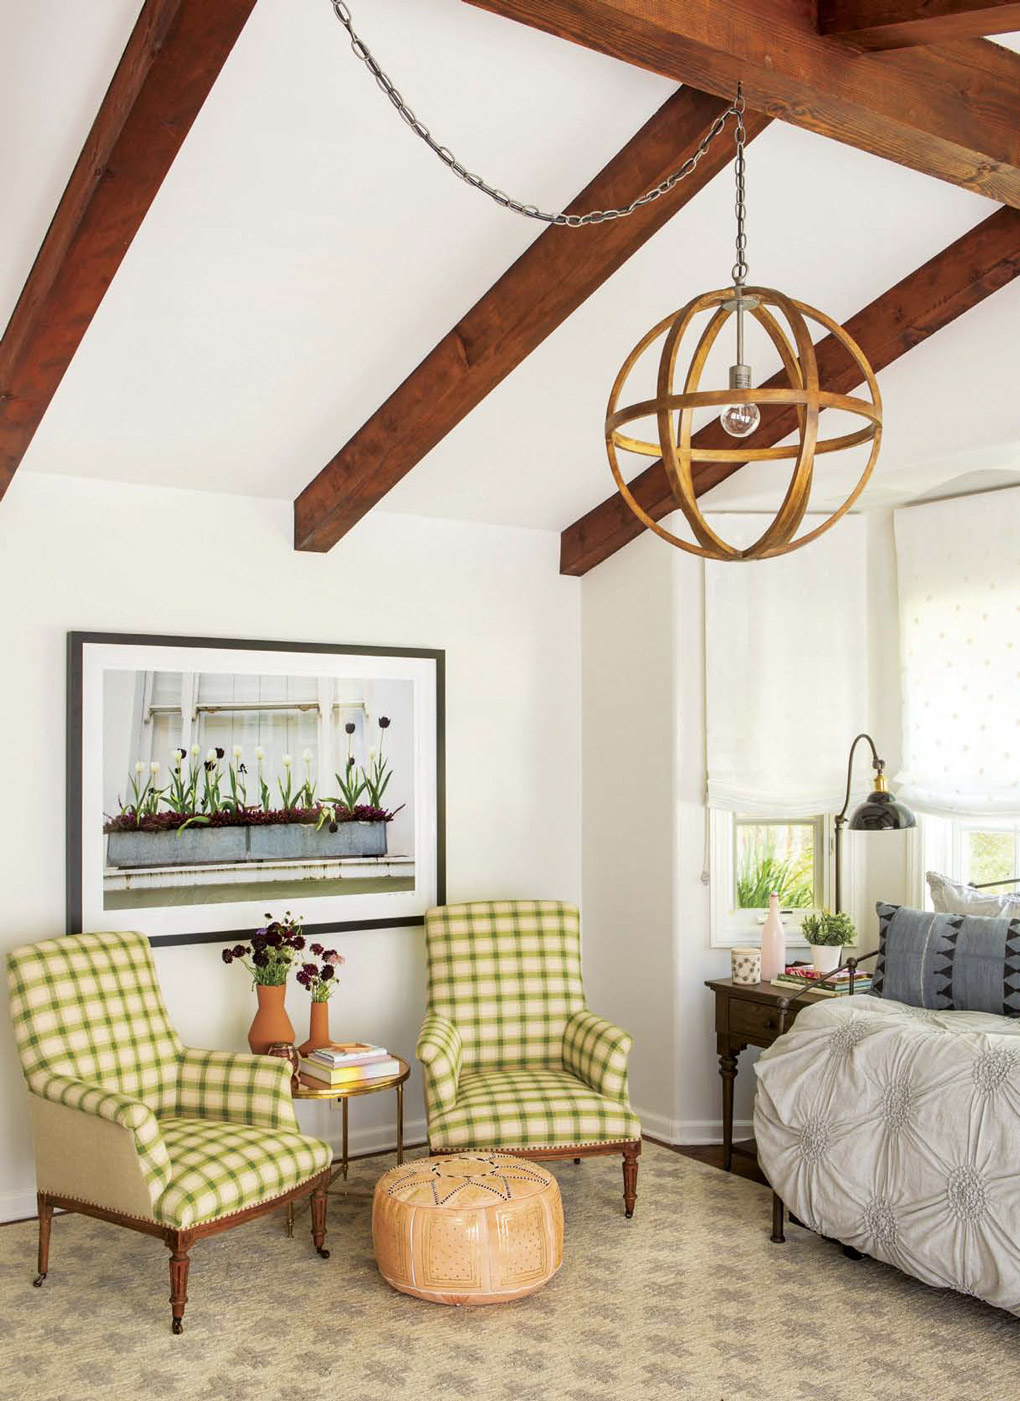 California cottage with bold exposed beams with a circular chandelier placed above green checkered armchairs.